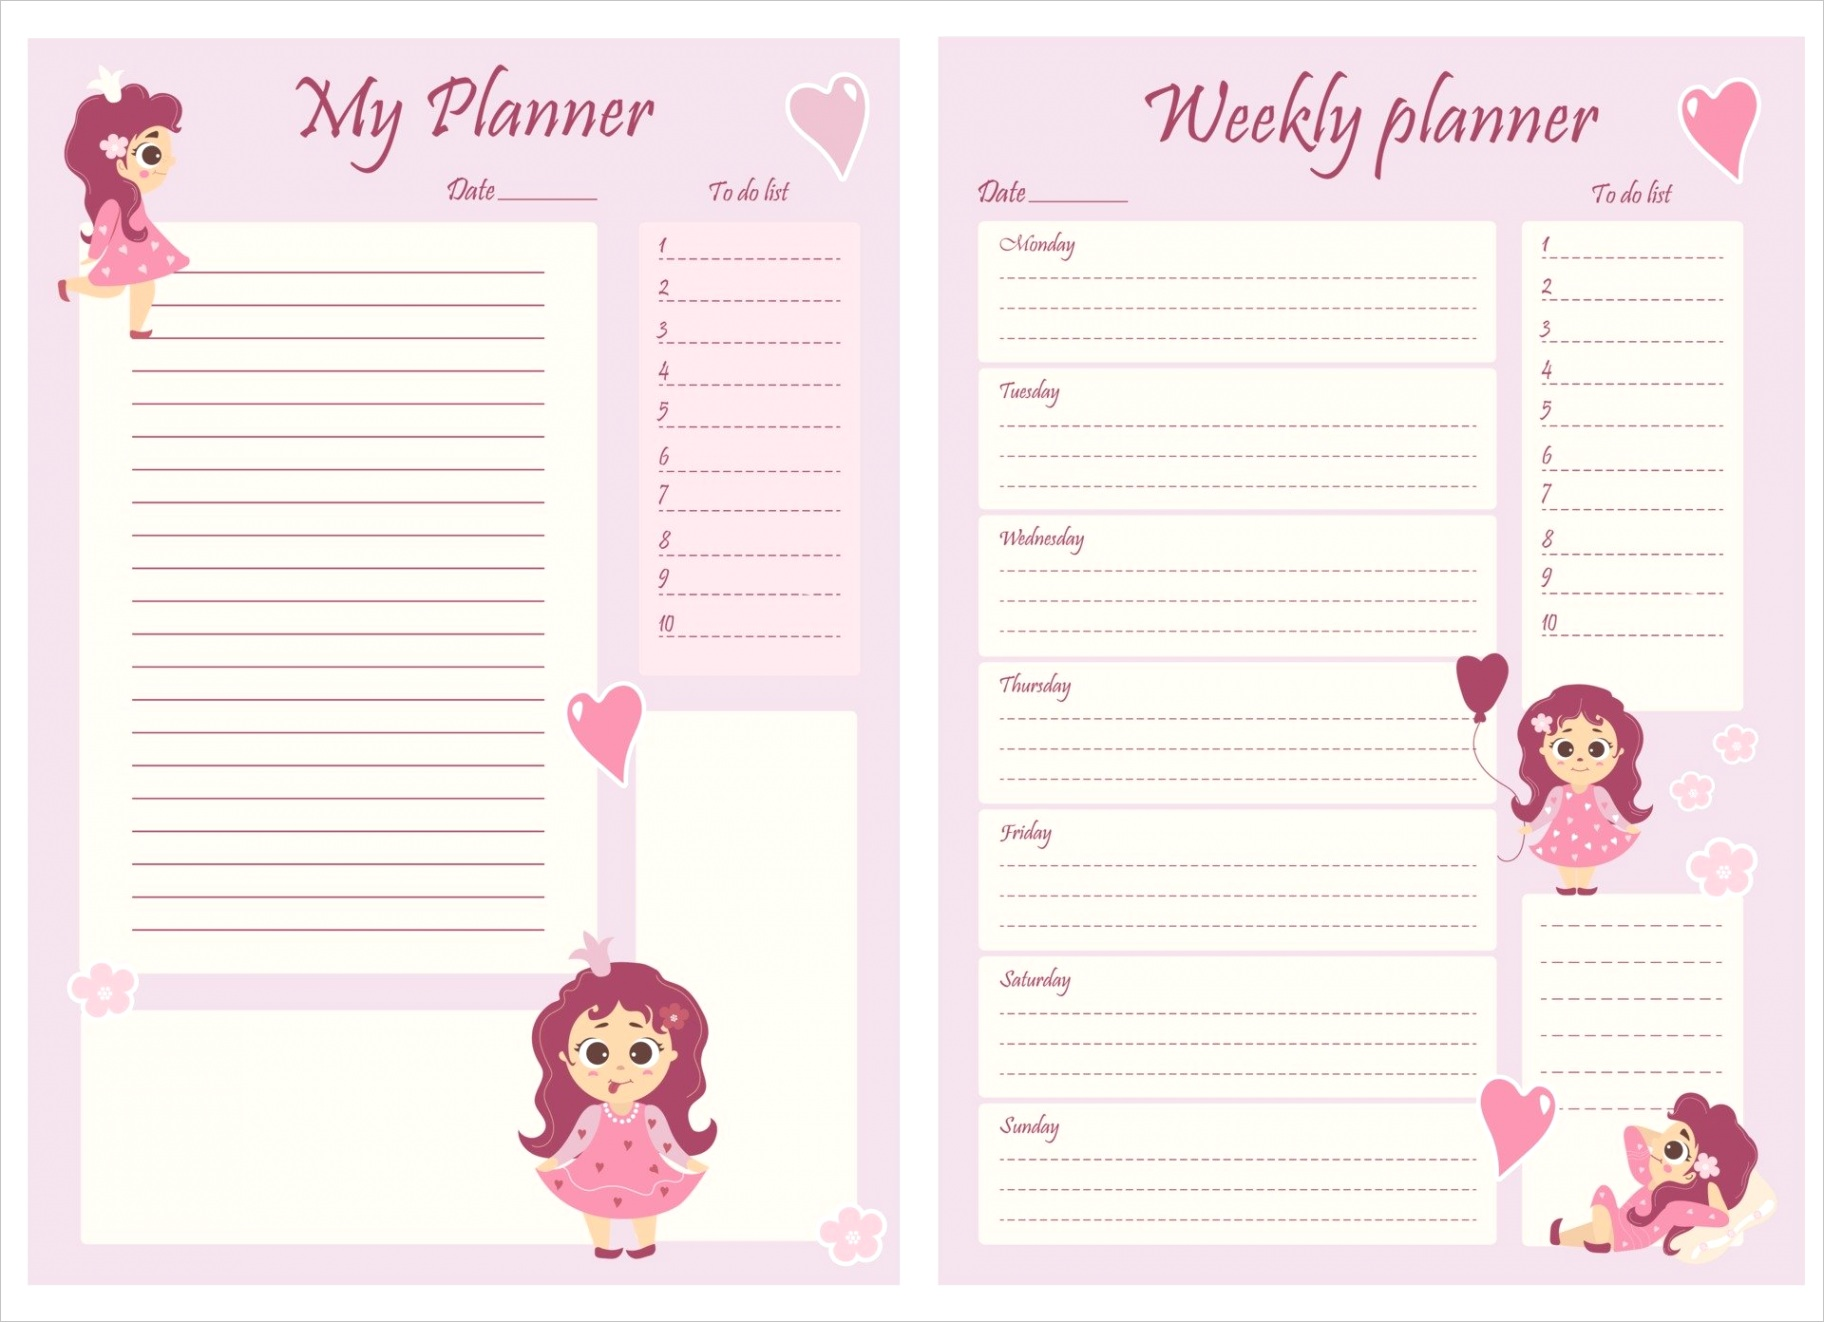 cute girl planner templates for a day a week a to do list and a place to take notes organizer and schedule with notes and to do list beautiful girl princess with flowers and balloons vector a4